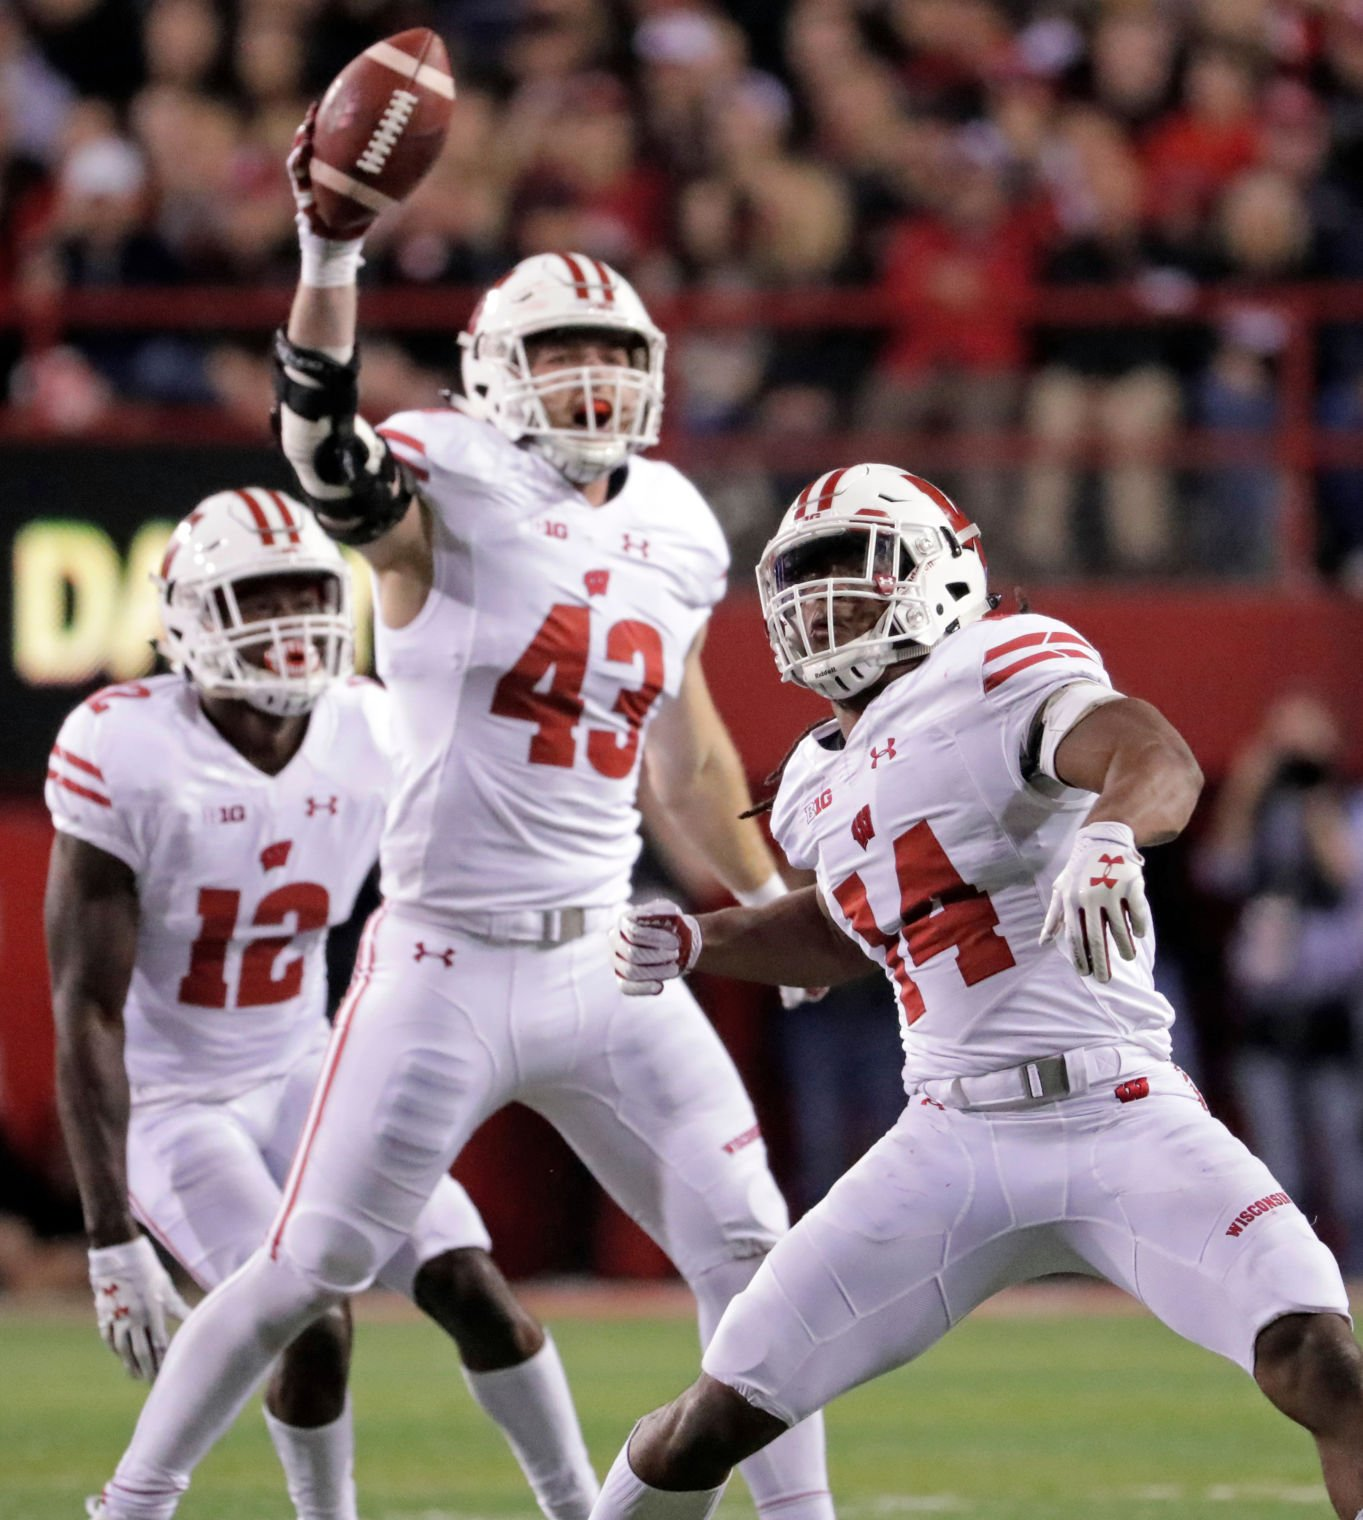 Taylor and Cephus a huge part of Badgers offense